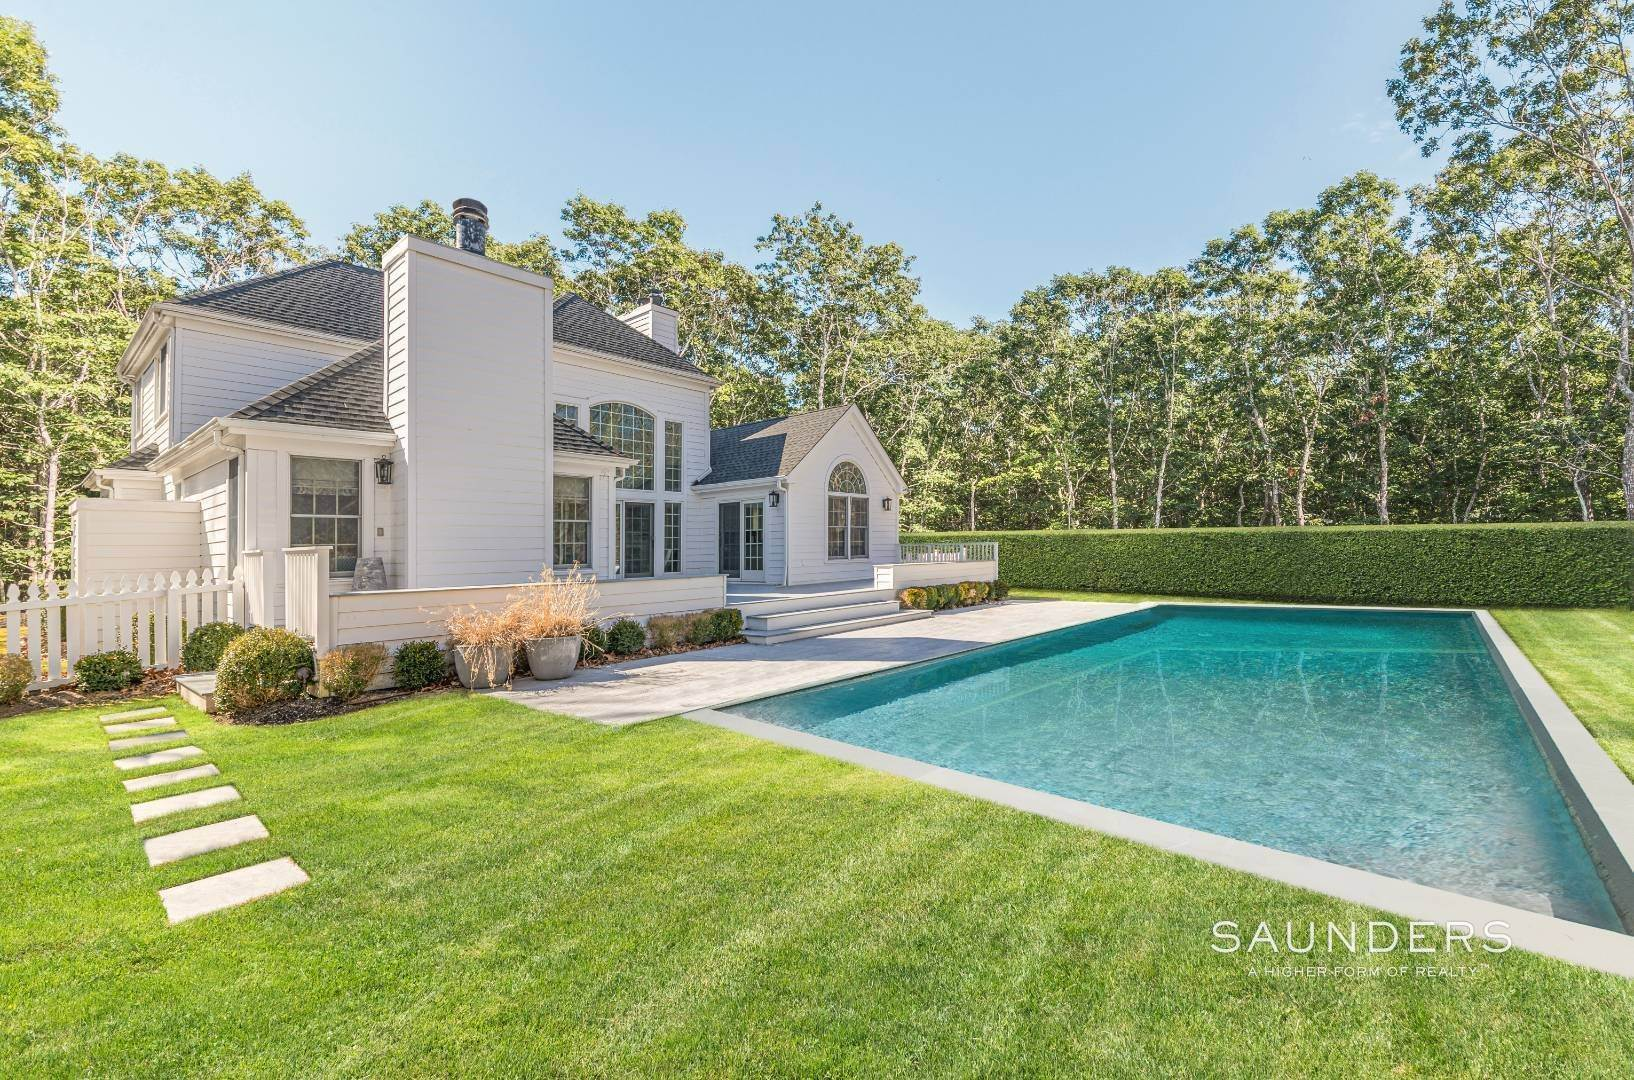 Single Family Homes for Sale at Beautifully Renovated For You In Bridgehampton 25 Tansey Lane, Bridgehampton, Southampton Town, NY 11932